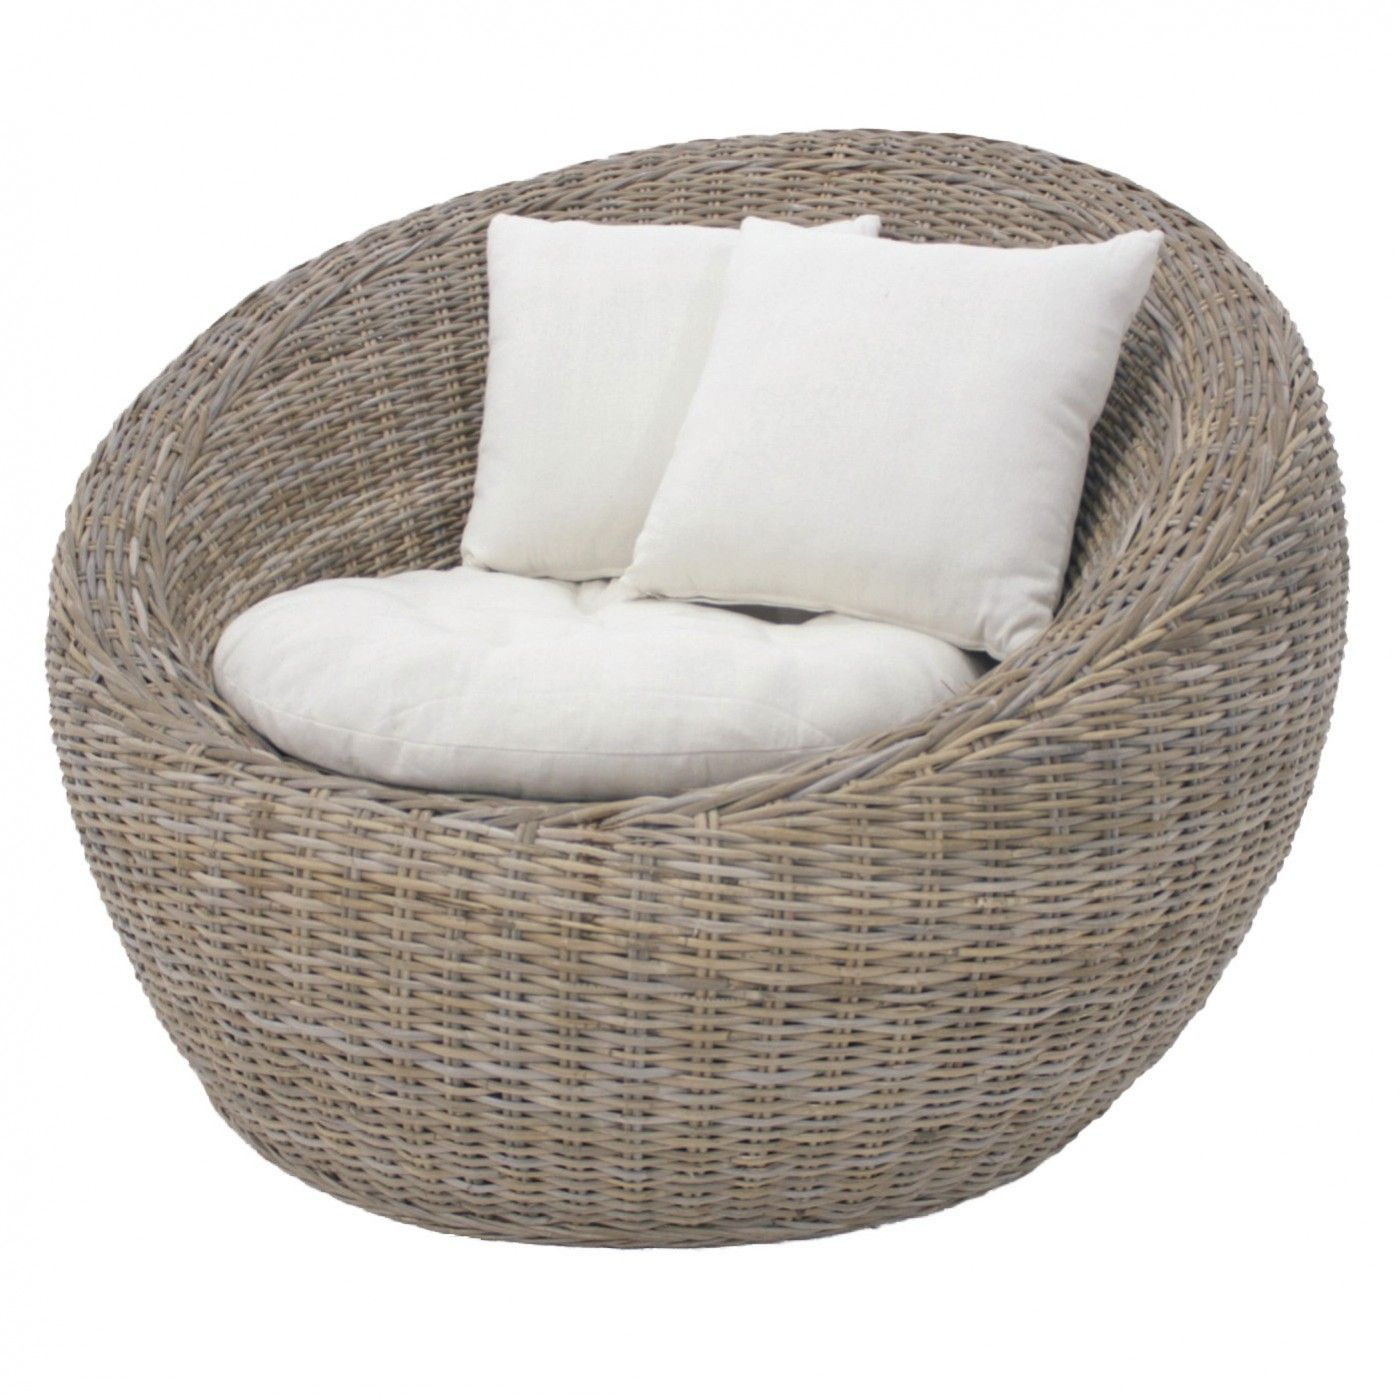 outdoor wicker chairs nz zoey swivel chair carlos tub shape and